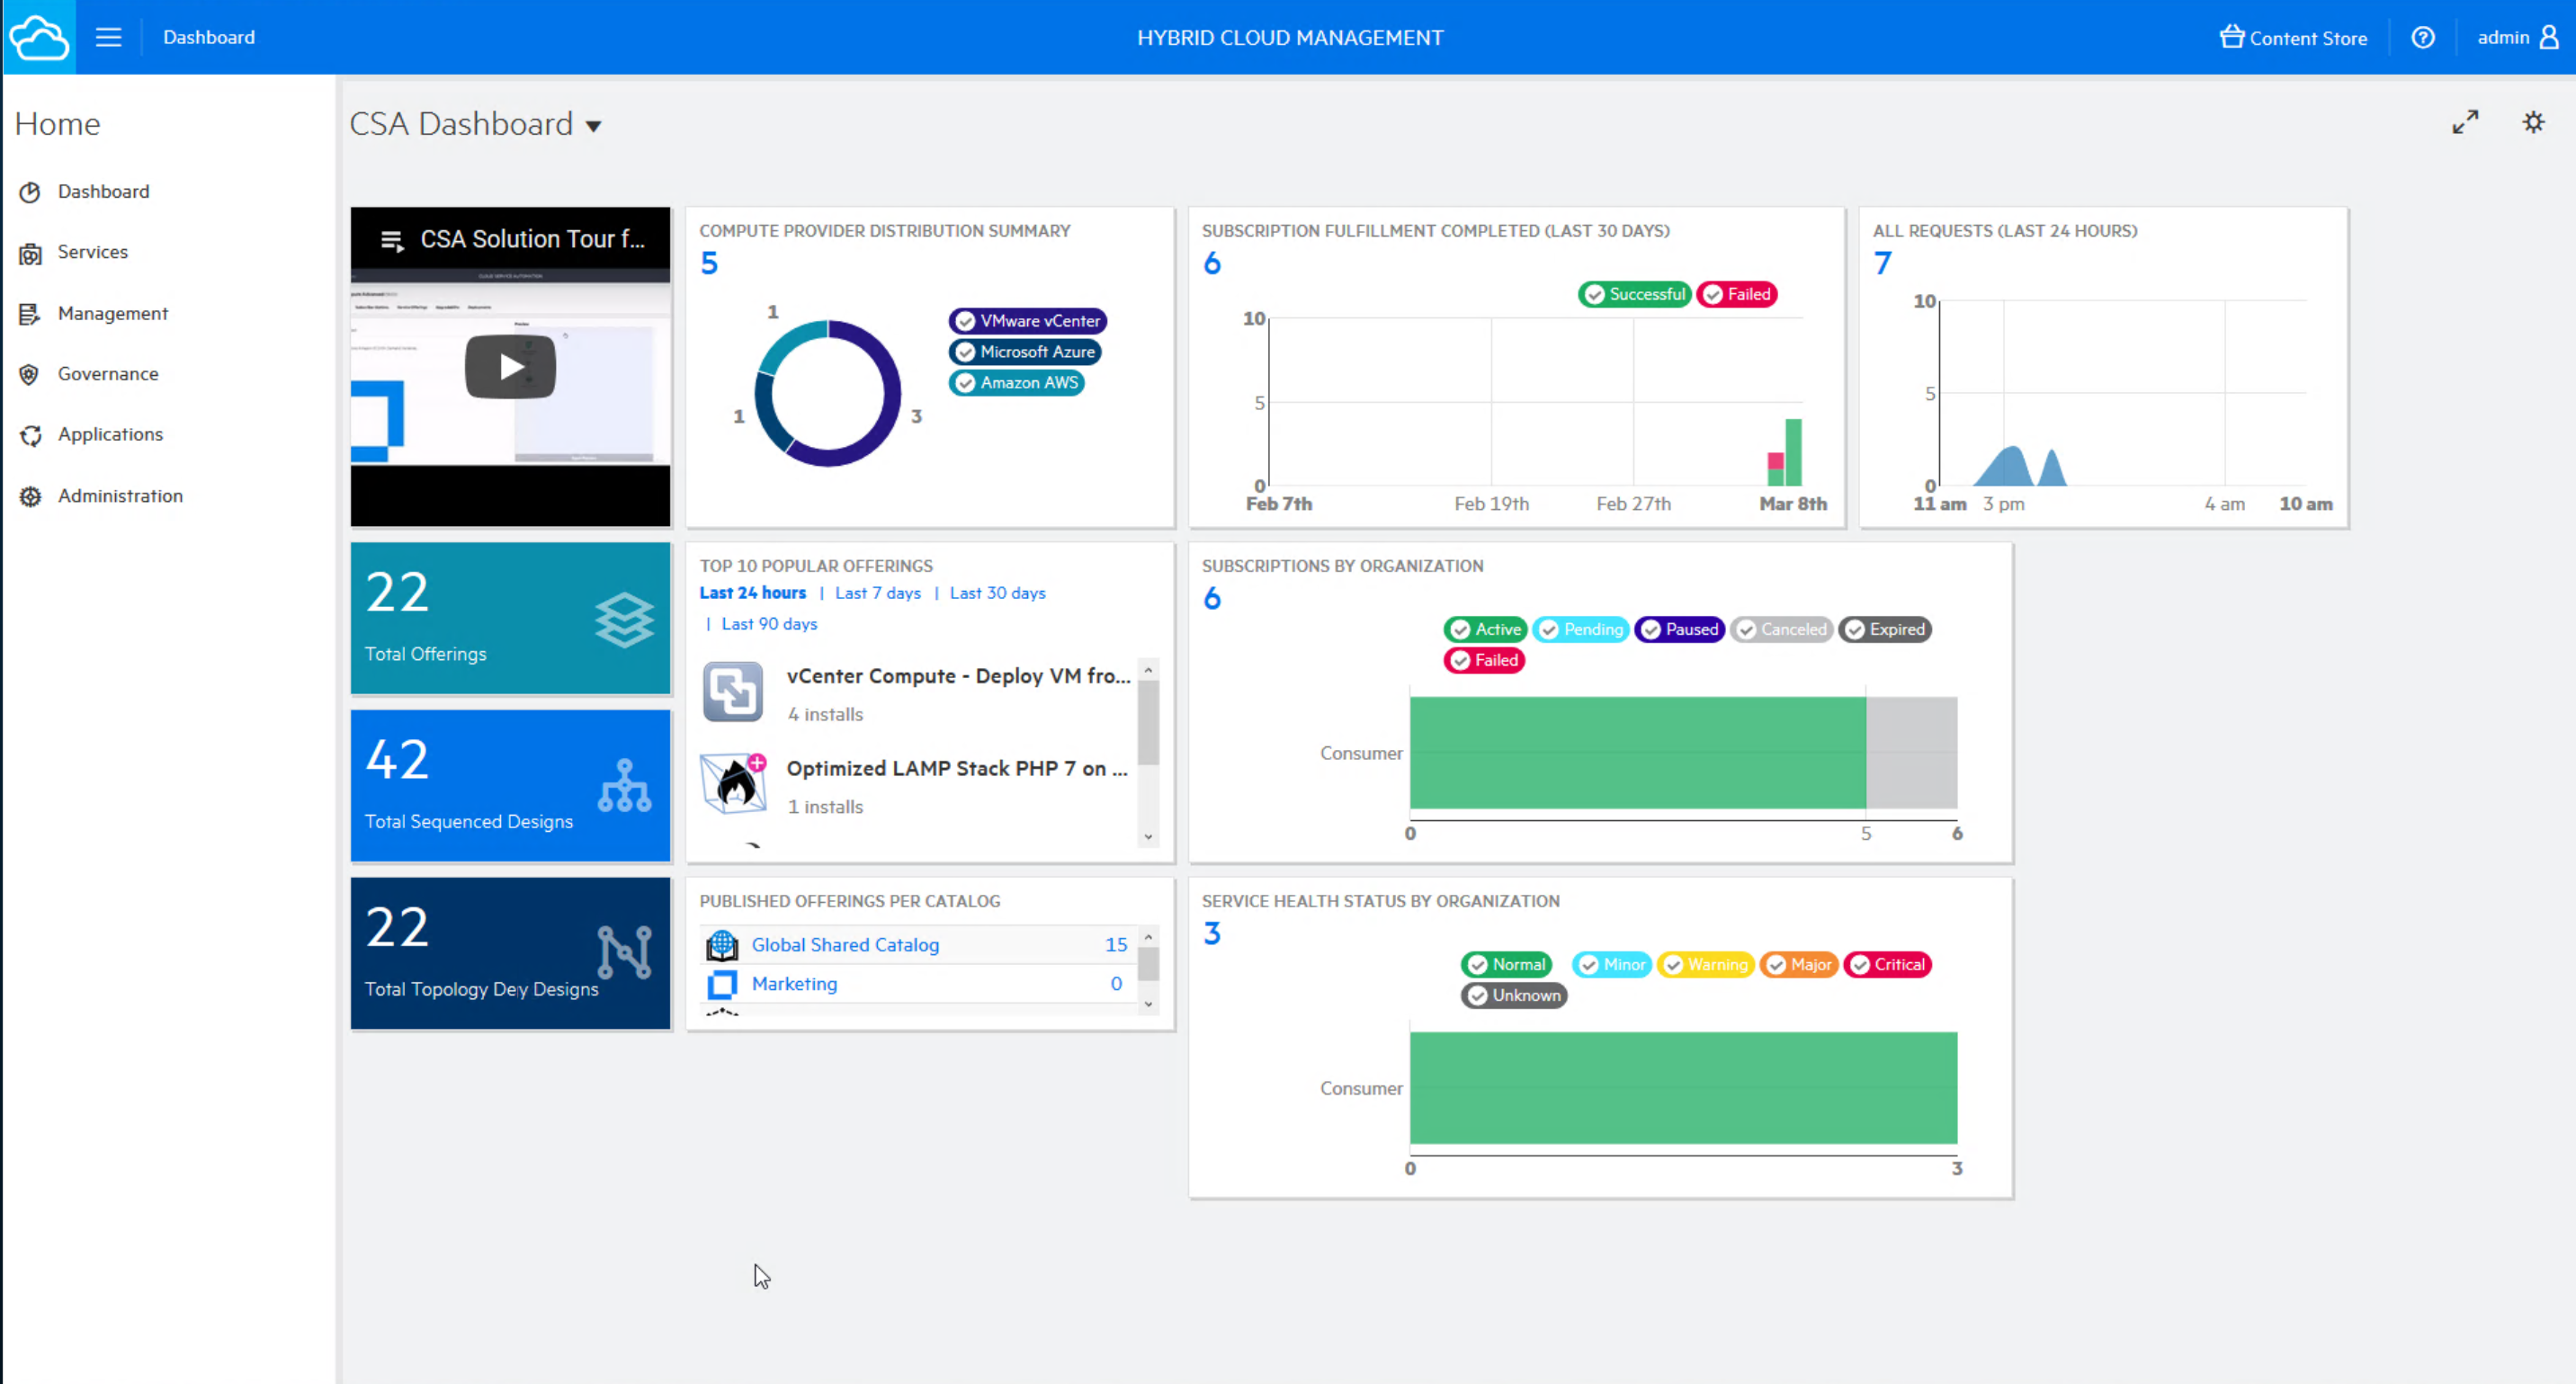 Manage hybrid resources: Keep track of all deployed resources and services across clouds and organizations with the HCM Resource Dashboard